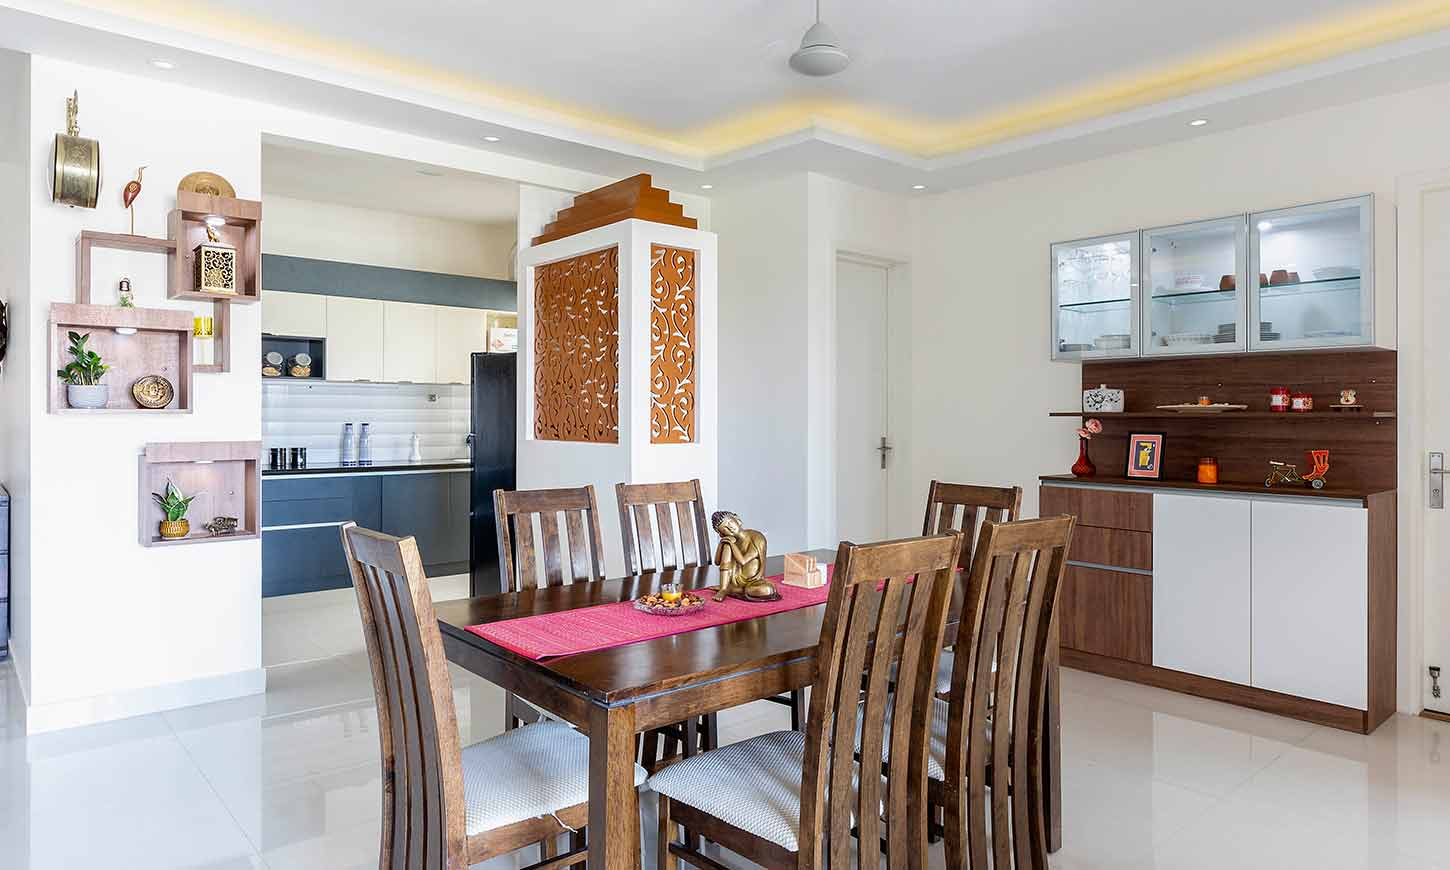 Dining room interior done by one of the best Interior designers in bangalore